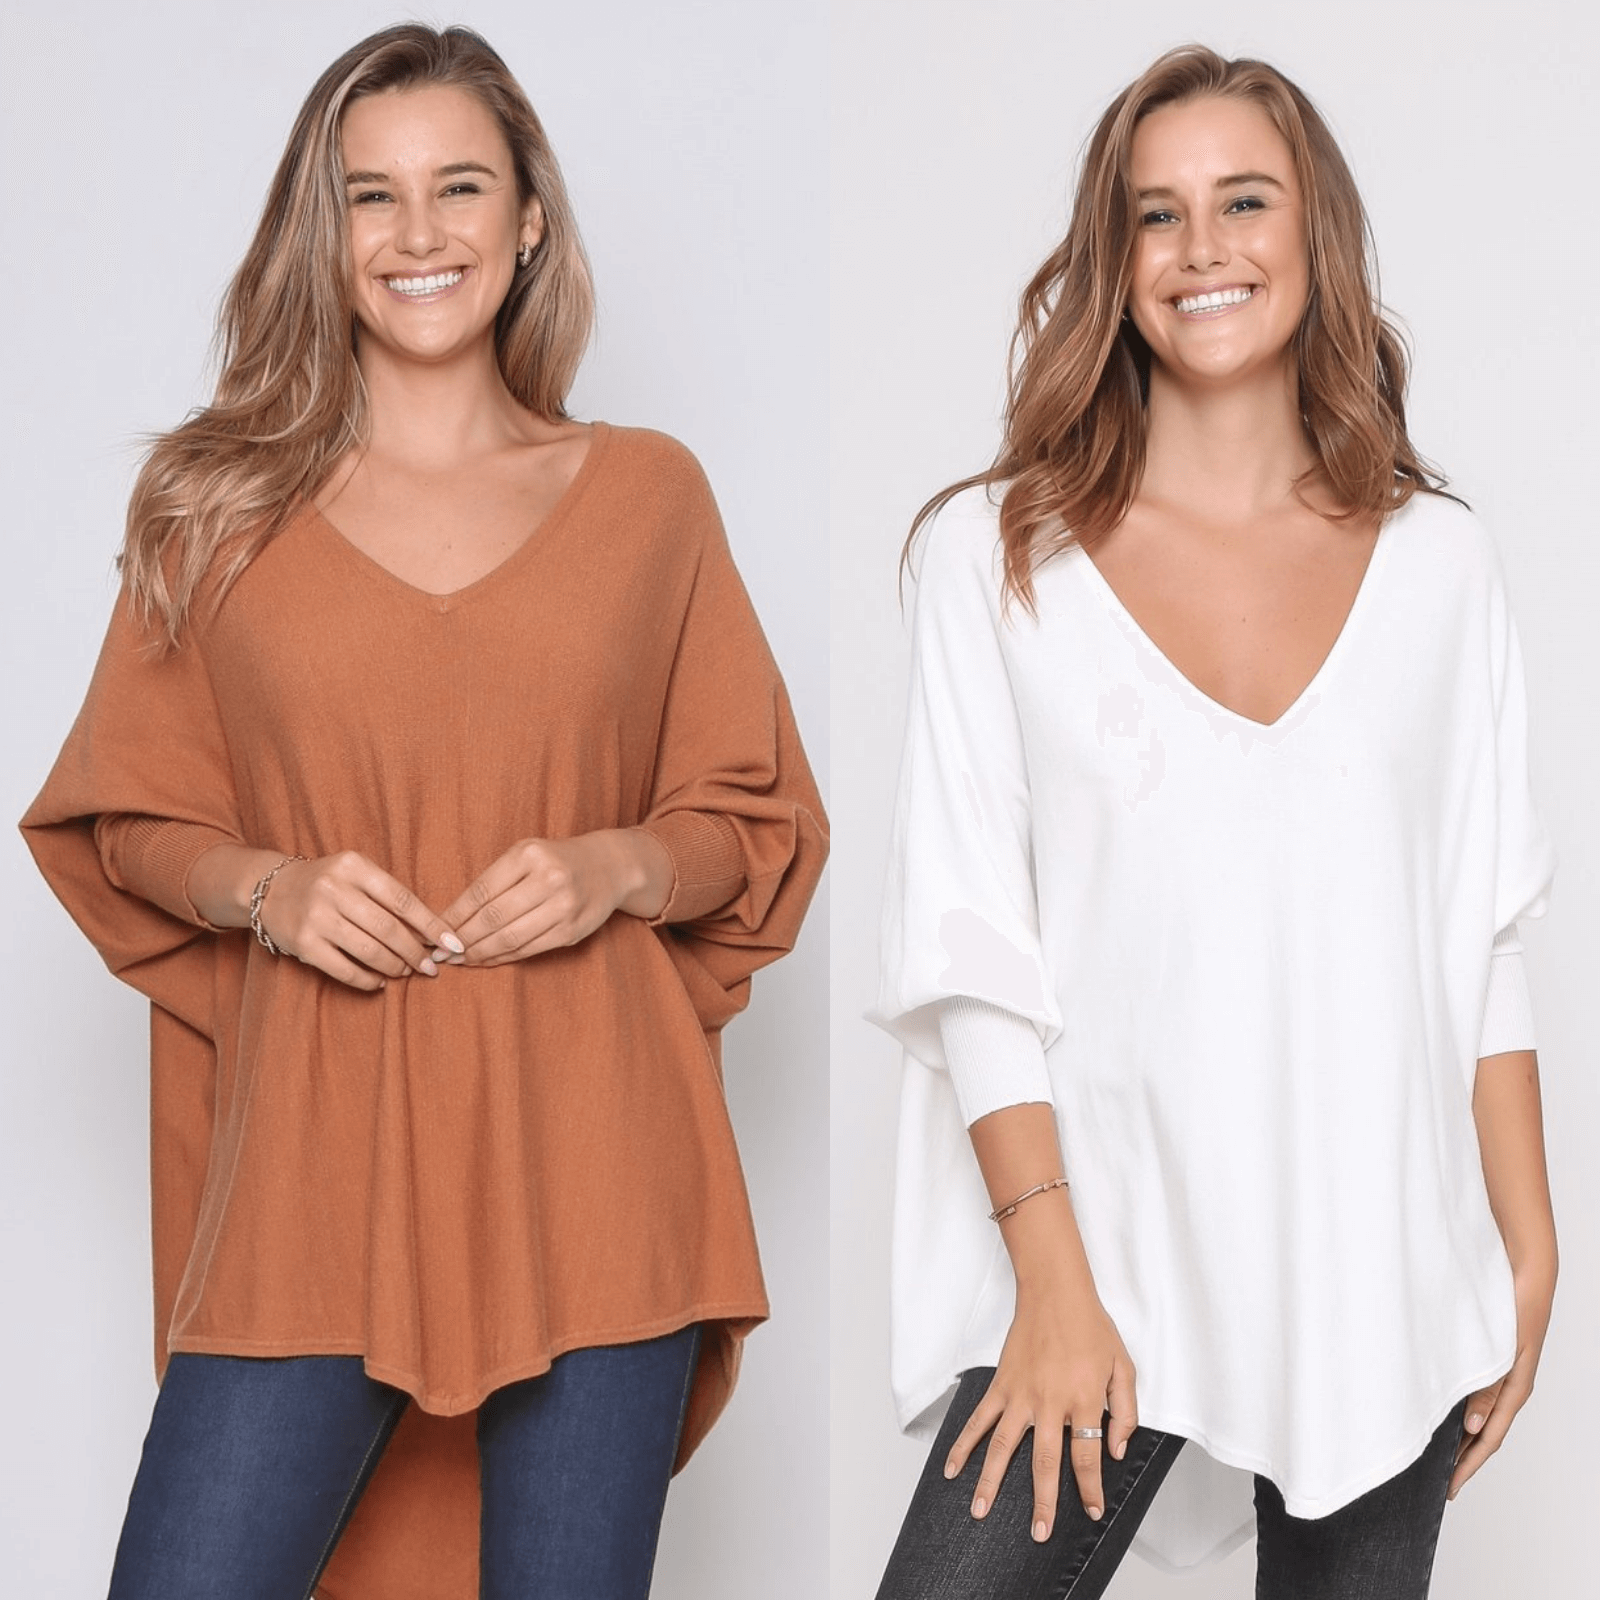 Two Zali Knit Top Bundle - Caramel and White